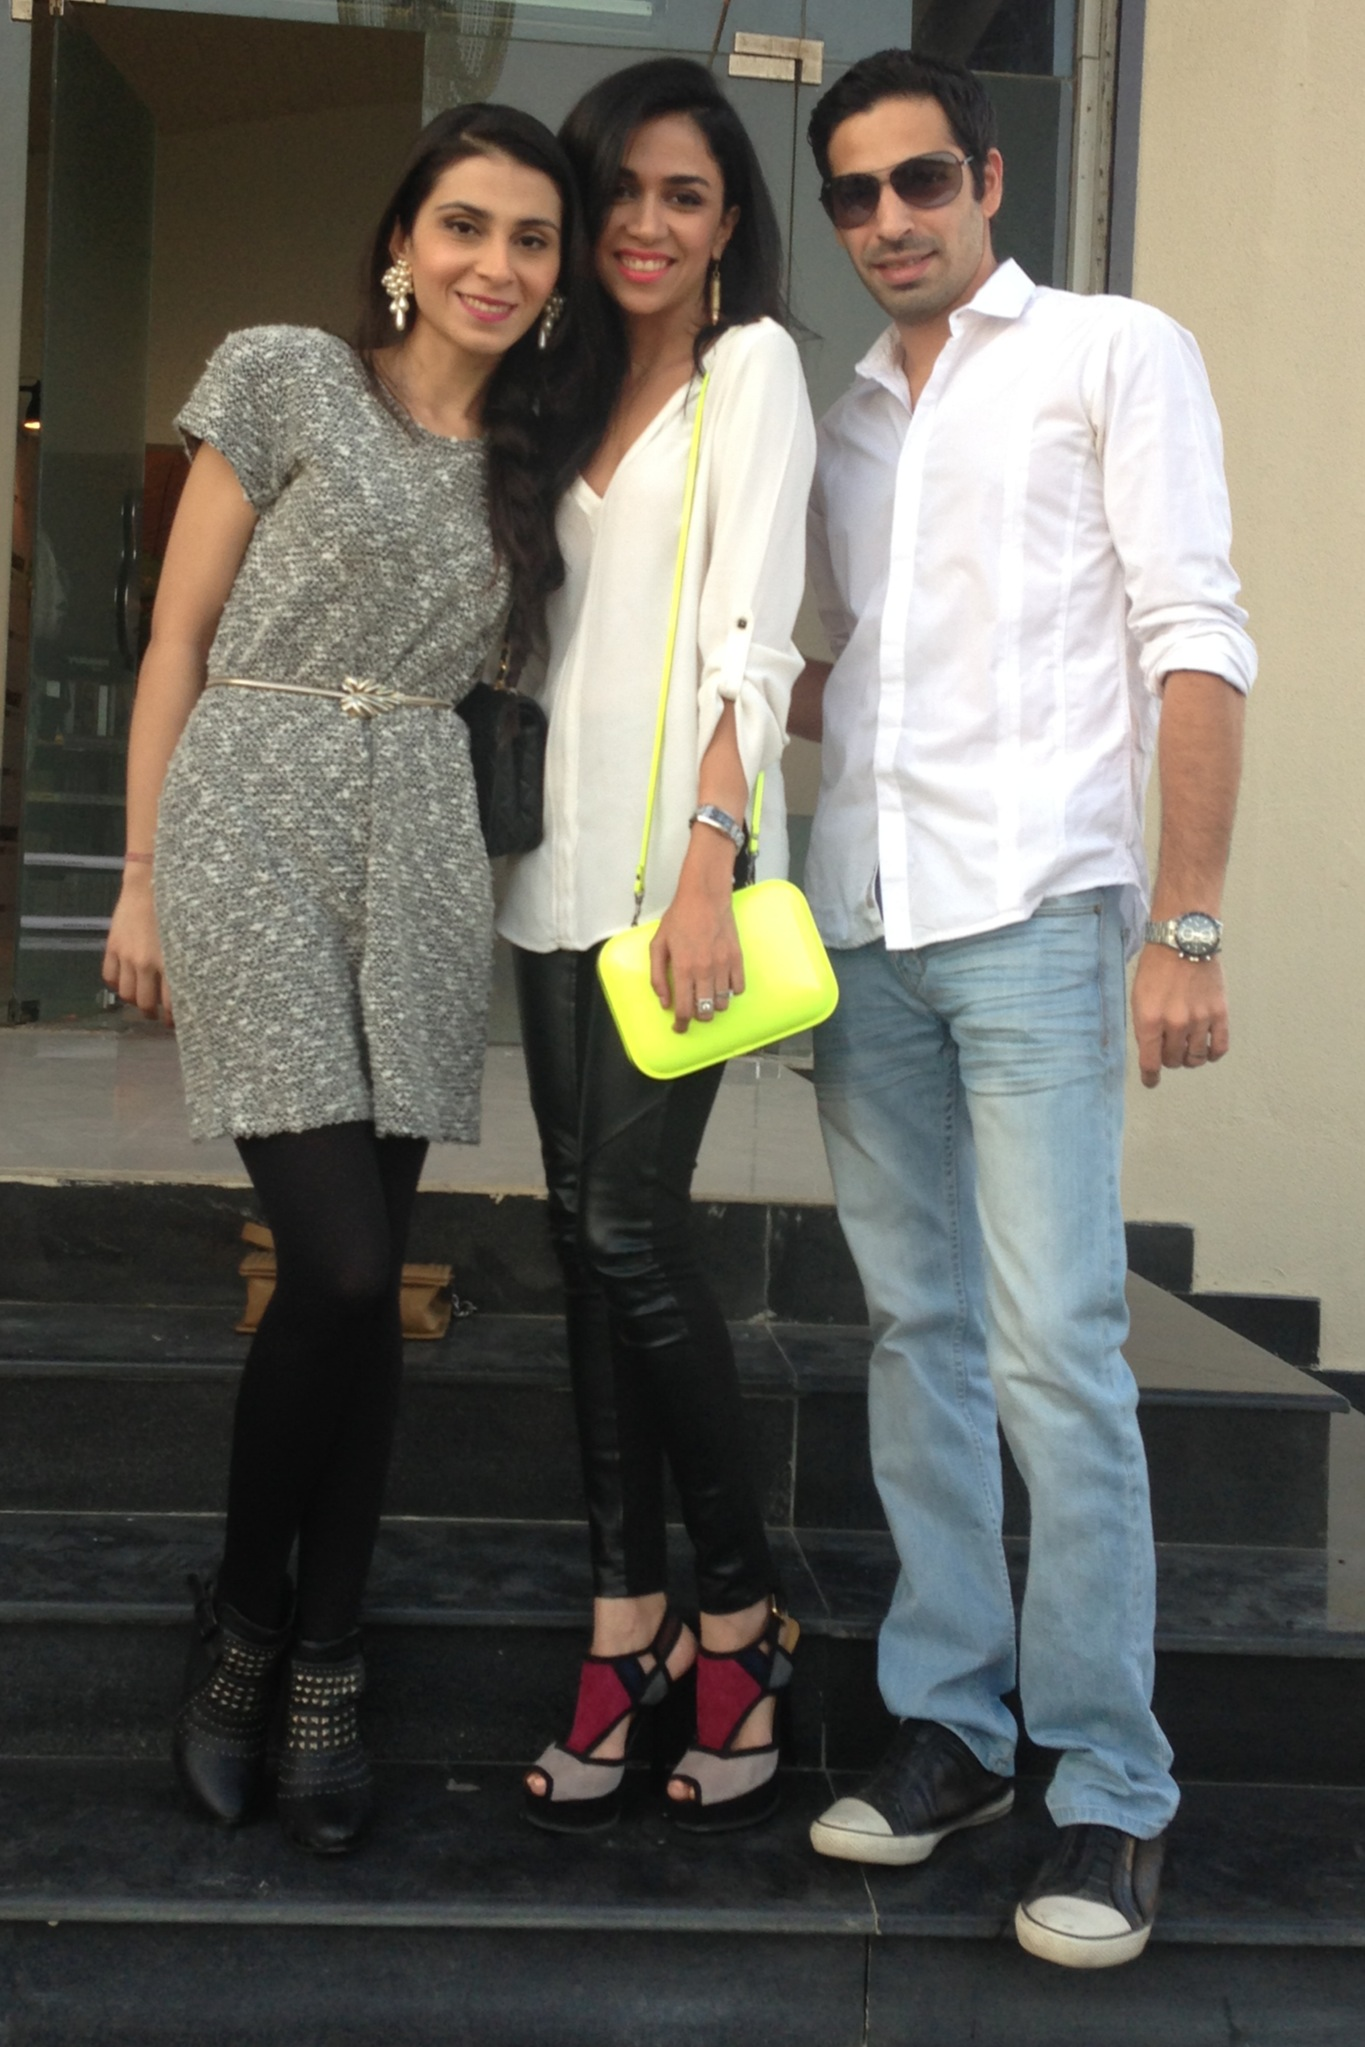 Feeha Jamshed, Maha Burney and Nadir Firoz Khan